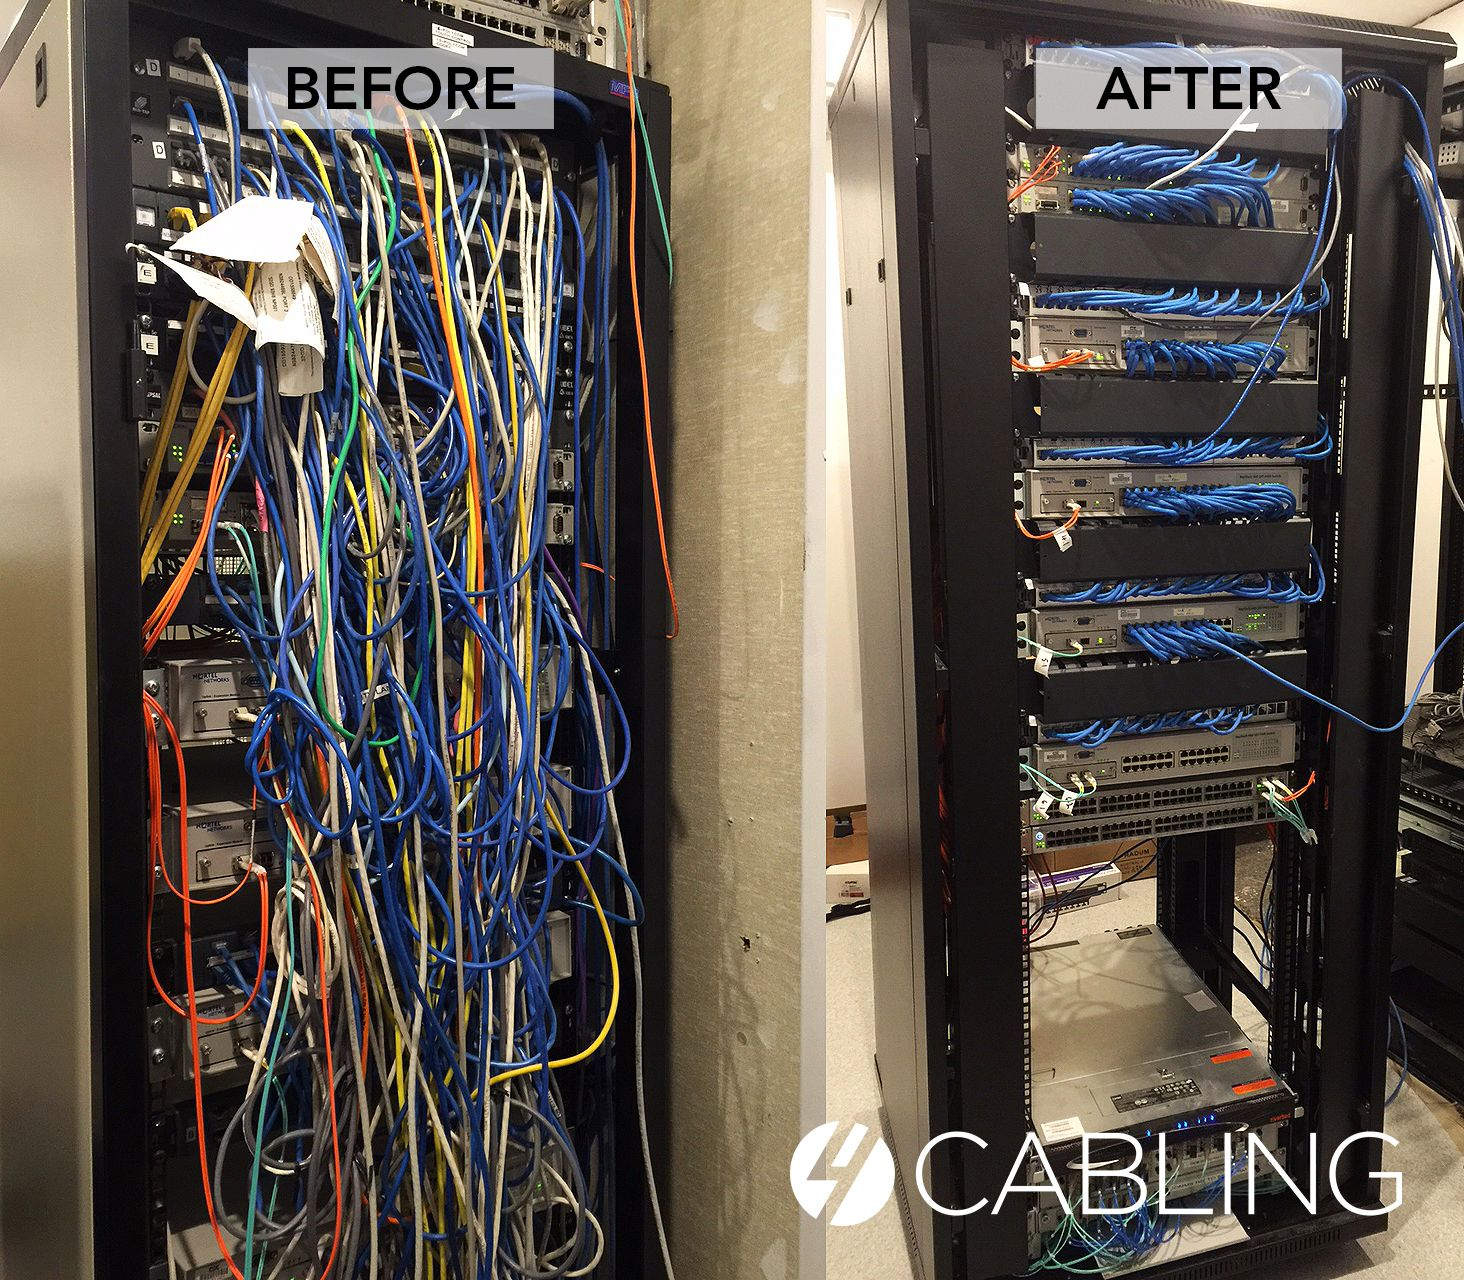 medium resolution of special thanks to our customer marc f for sending through this fantastic before after cabling job he completed over the weekend wow is all we can say